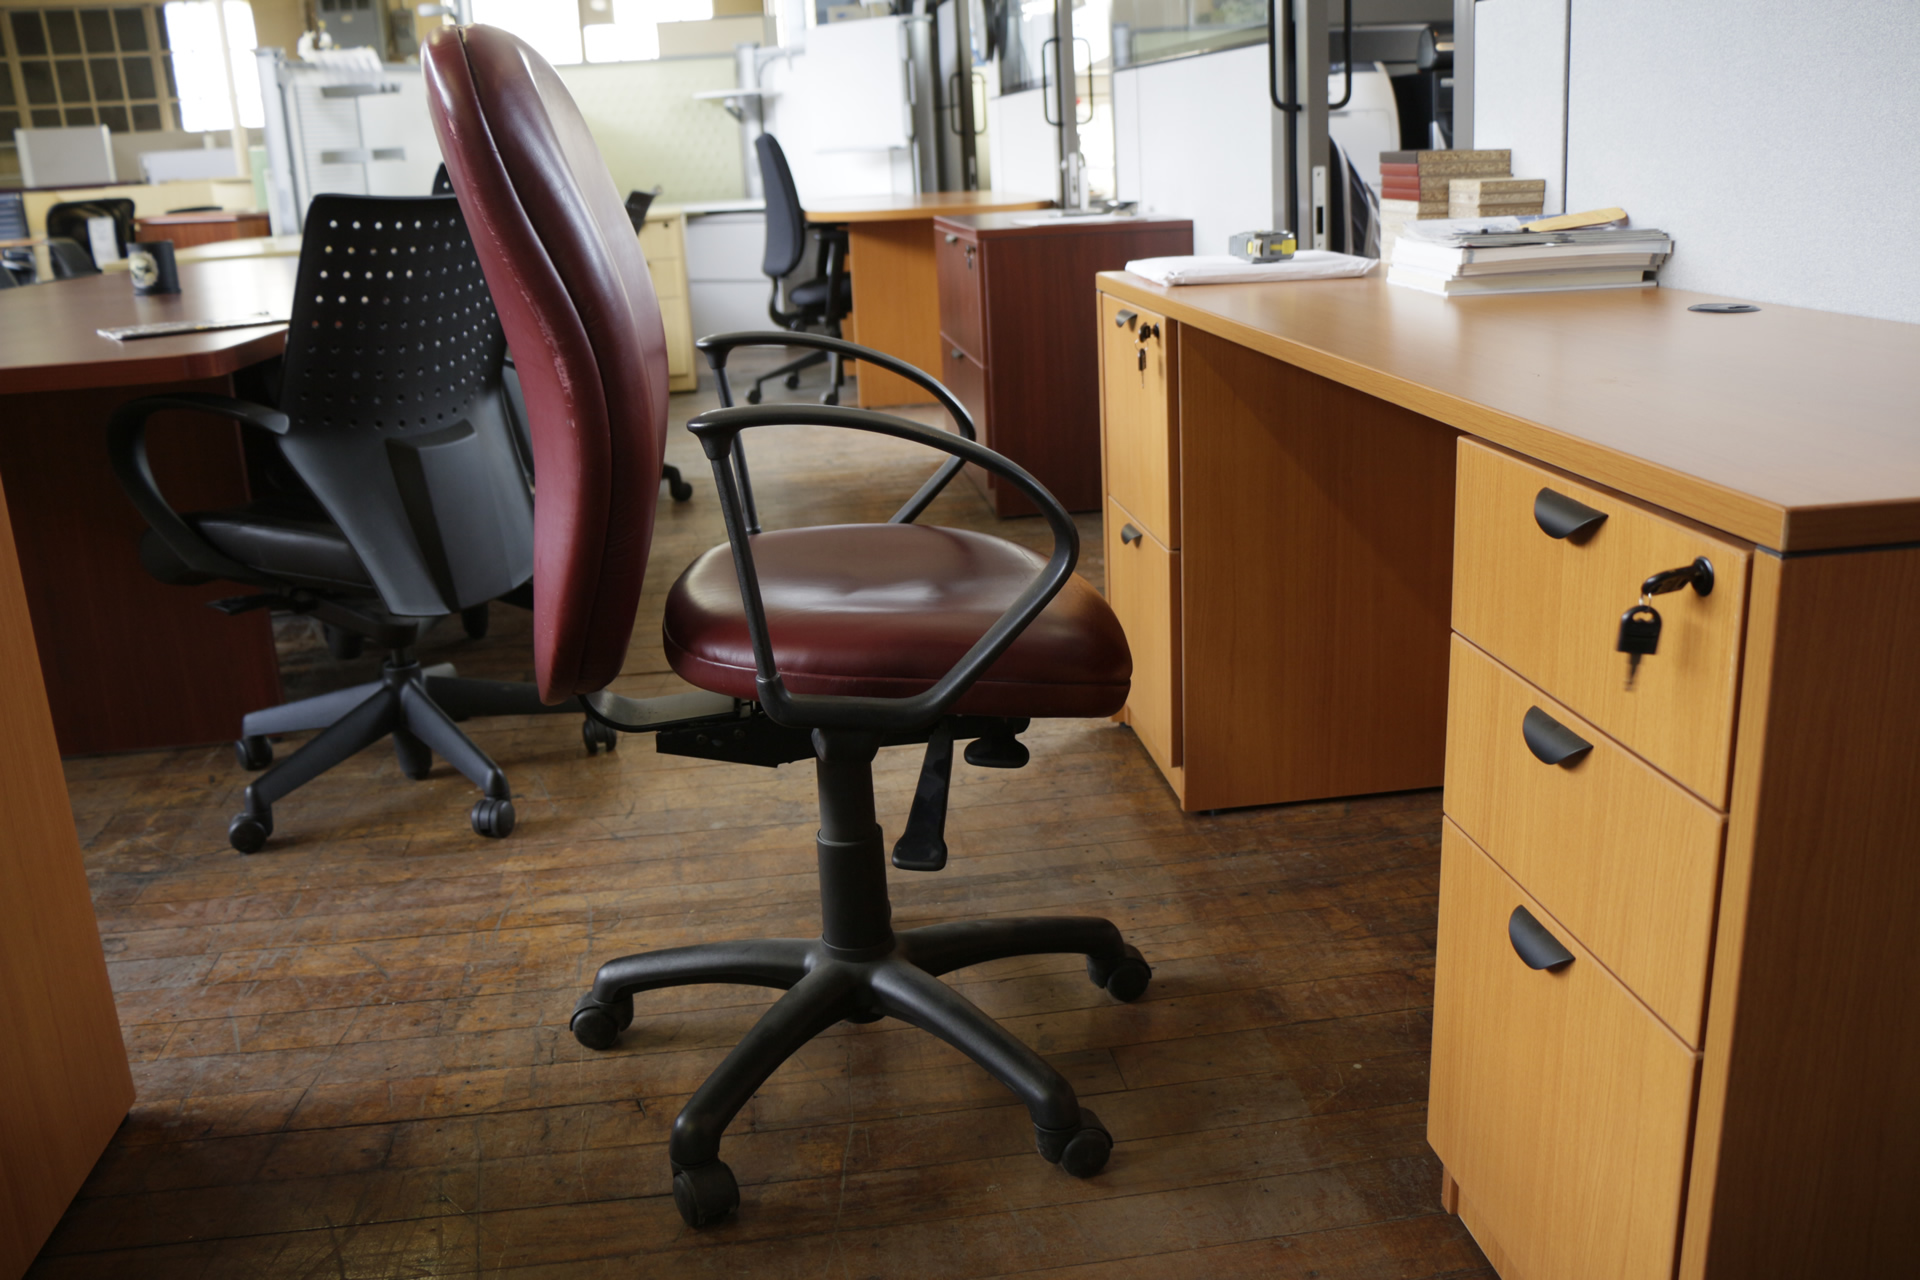 peartreeofficefurniture_peartreeofficefurniture_mg_3289.jpg